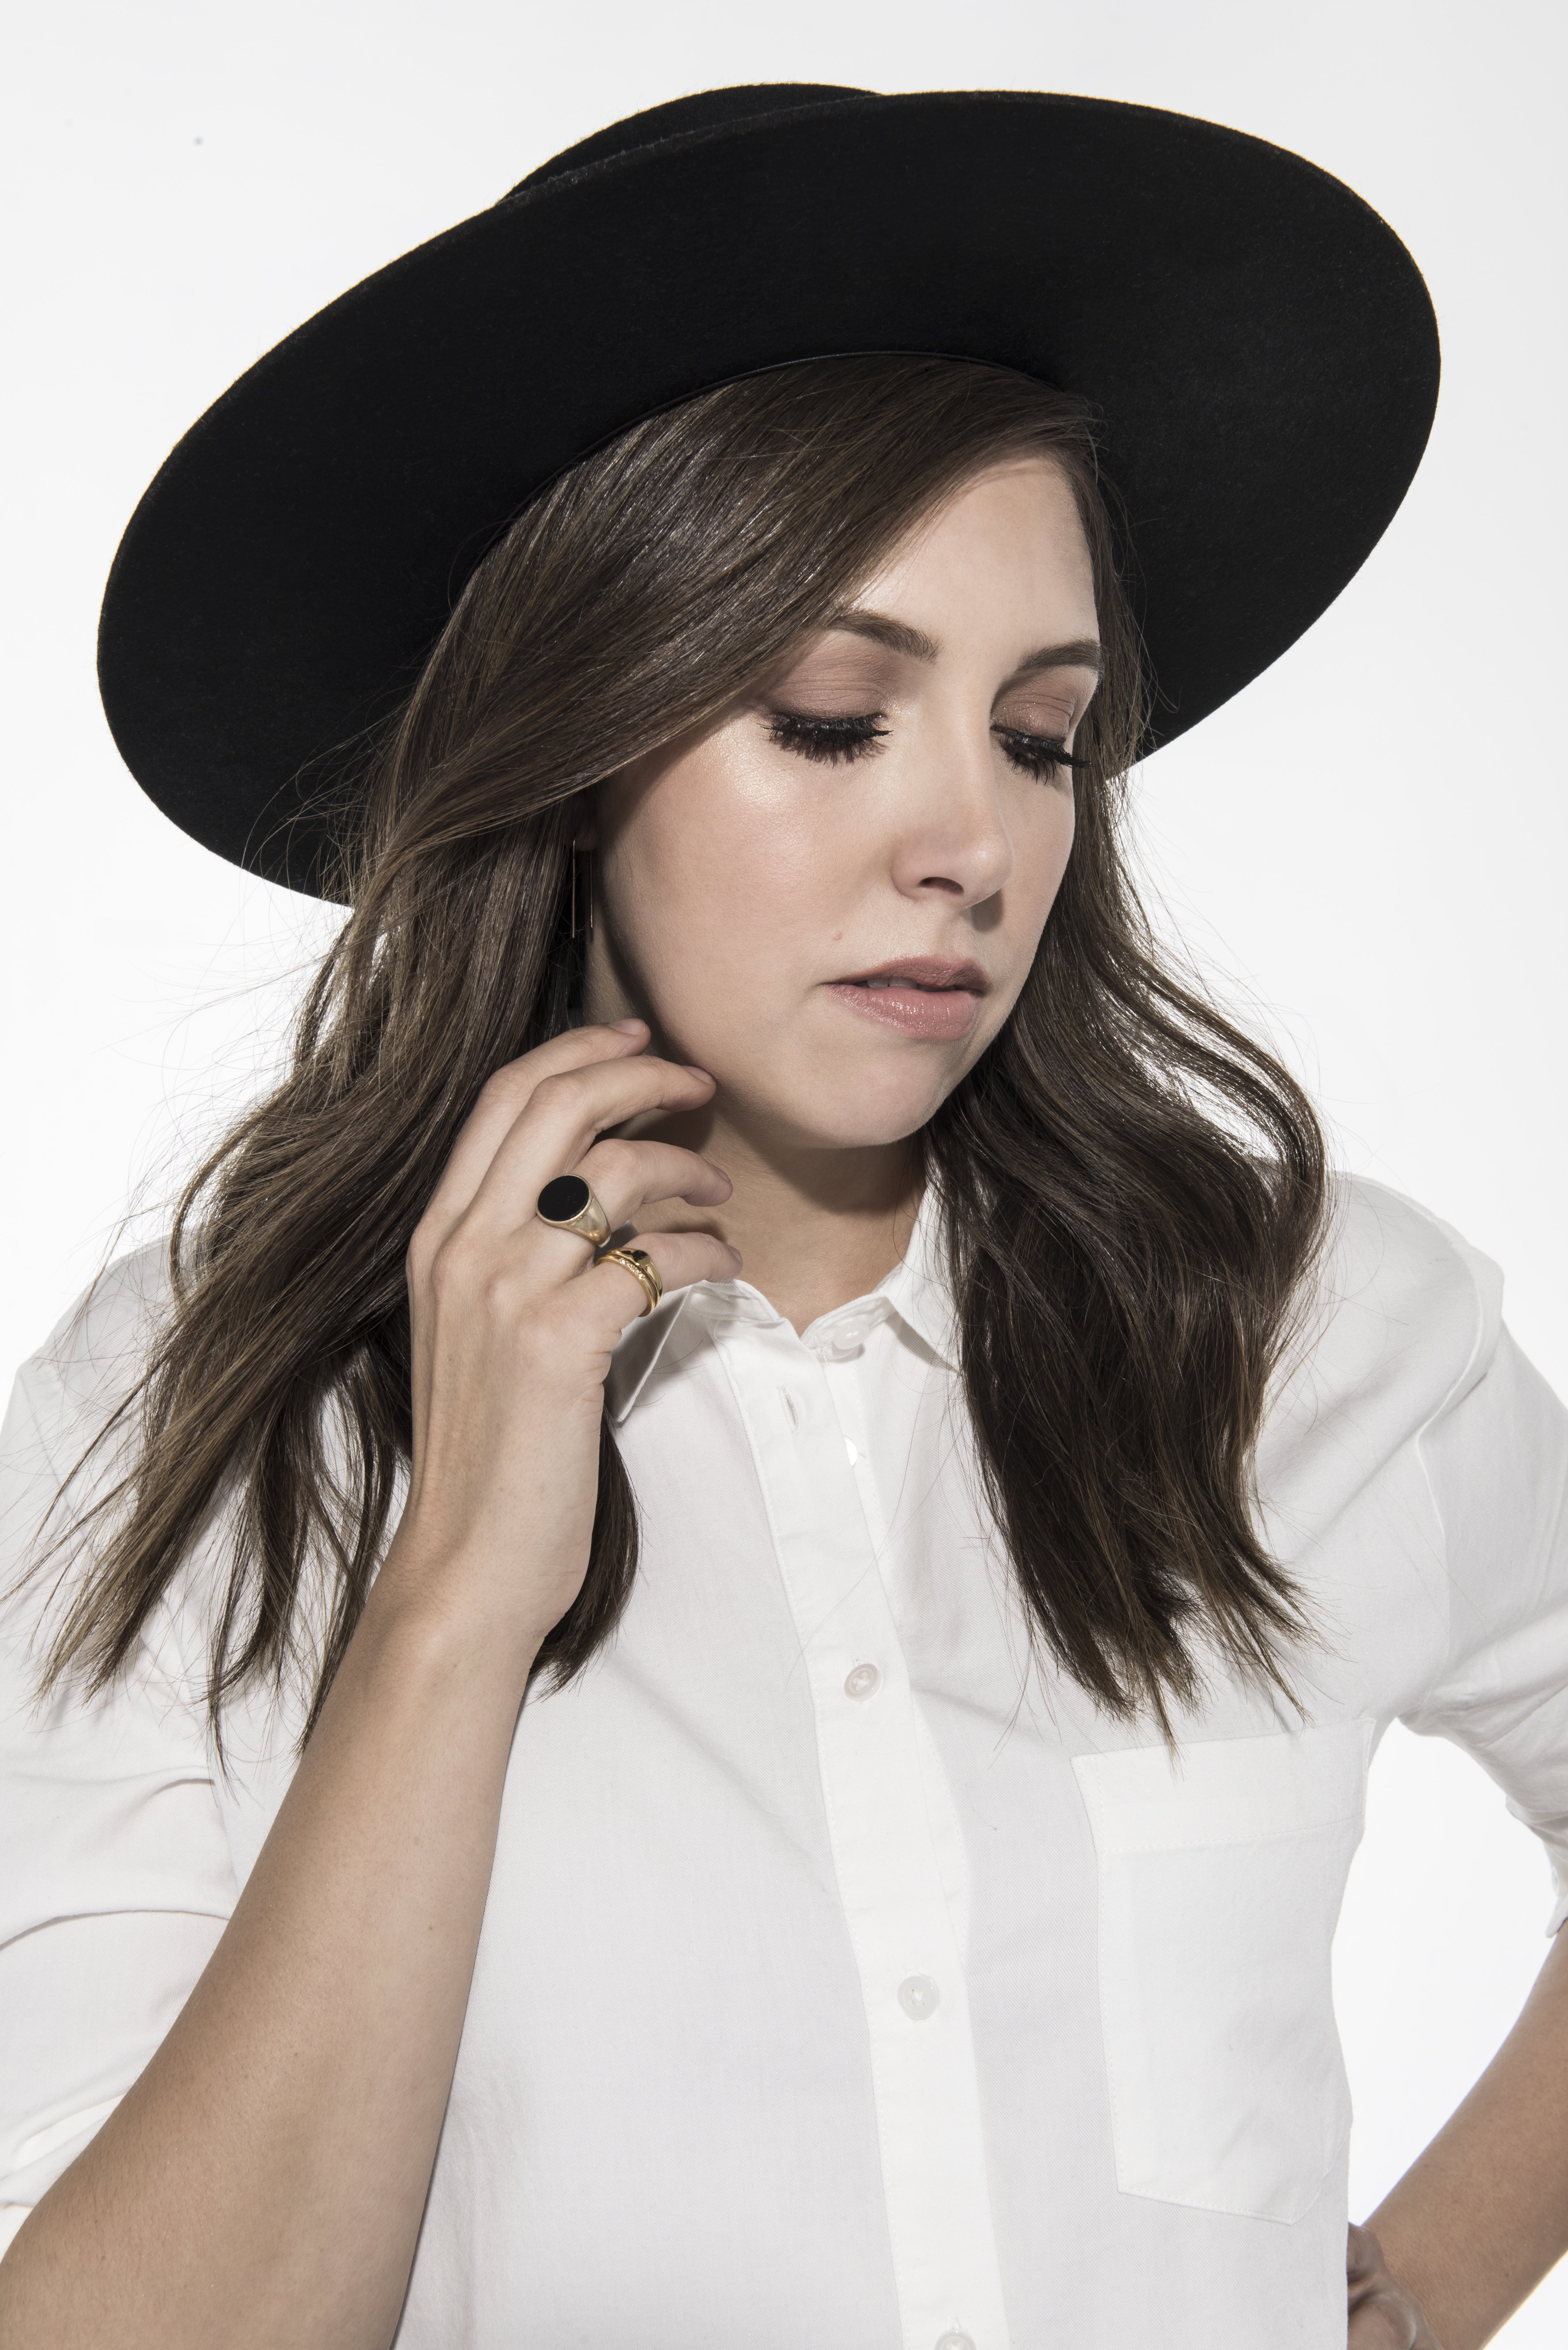 Francesca Battistelli as featured on Jesus Calling podcast